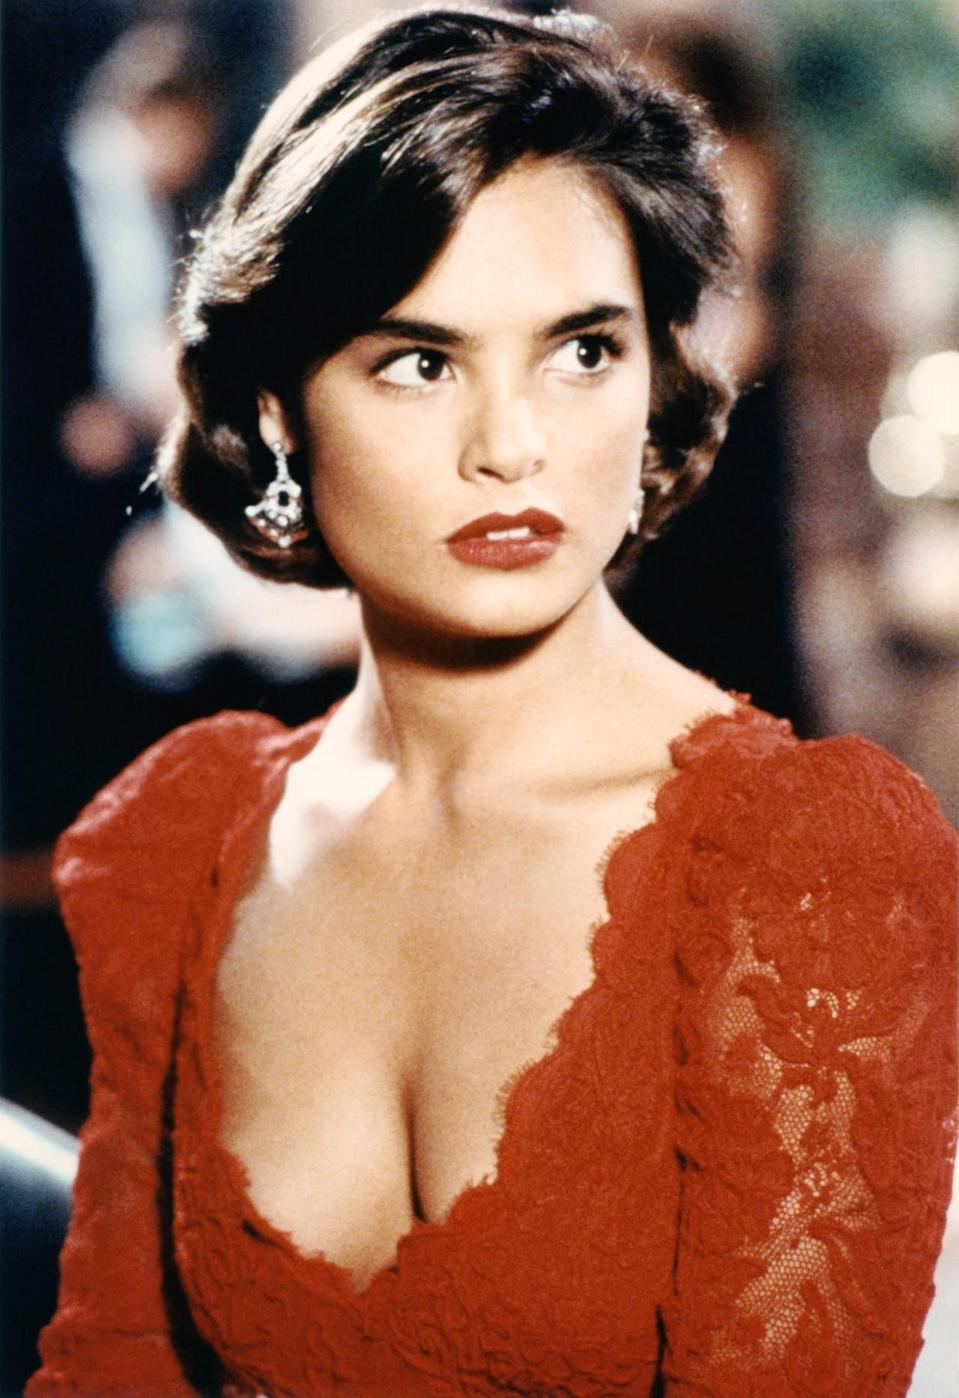 <p>As the beautiful girlfriend of Franz Sanchez, a powerful Latin American drug lord, she turns against him and helps Bond. Her dark eyes, bold brows, and red lips made Lamora quite the stunner. <i>(Photo: Everett Collection)</i></p>